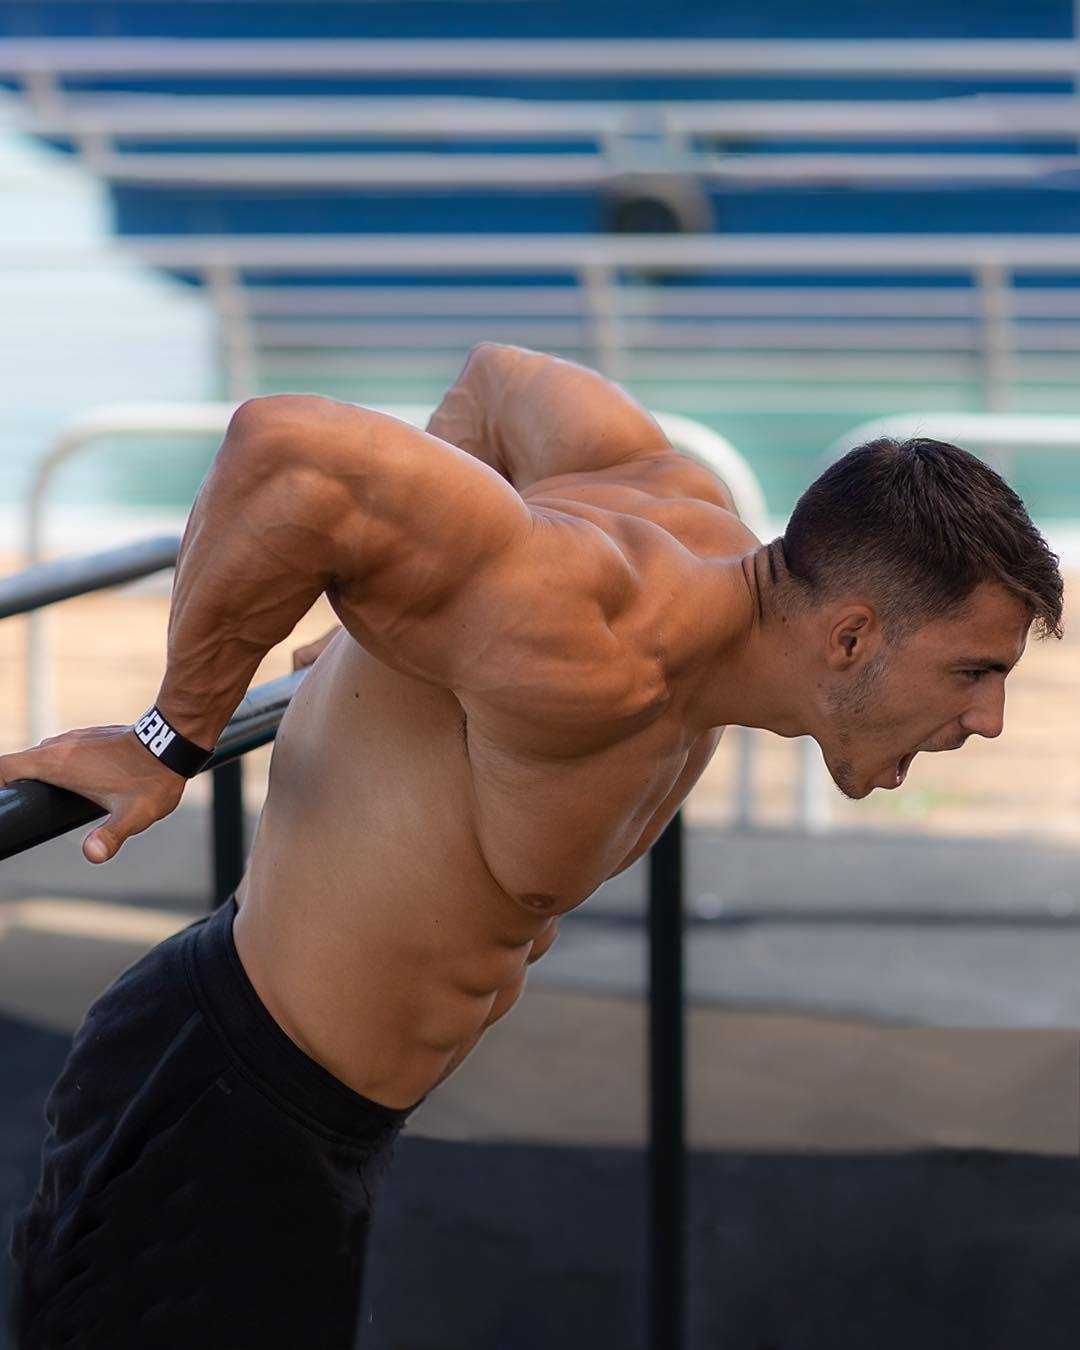 straight-masculine-young-mad-guy-outdoor-workout-biceps-huge-pecs-abs